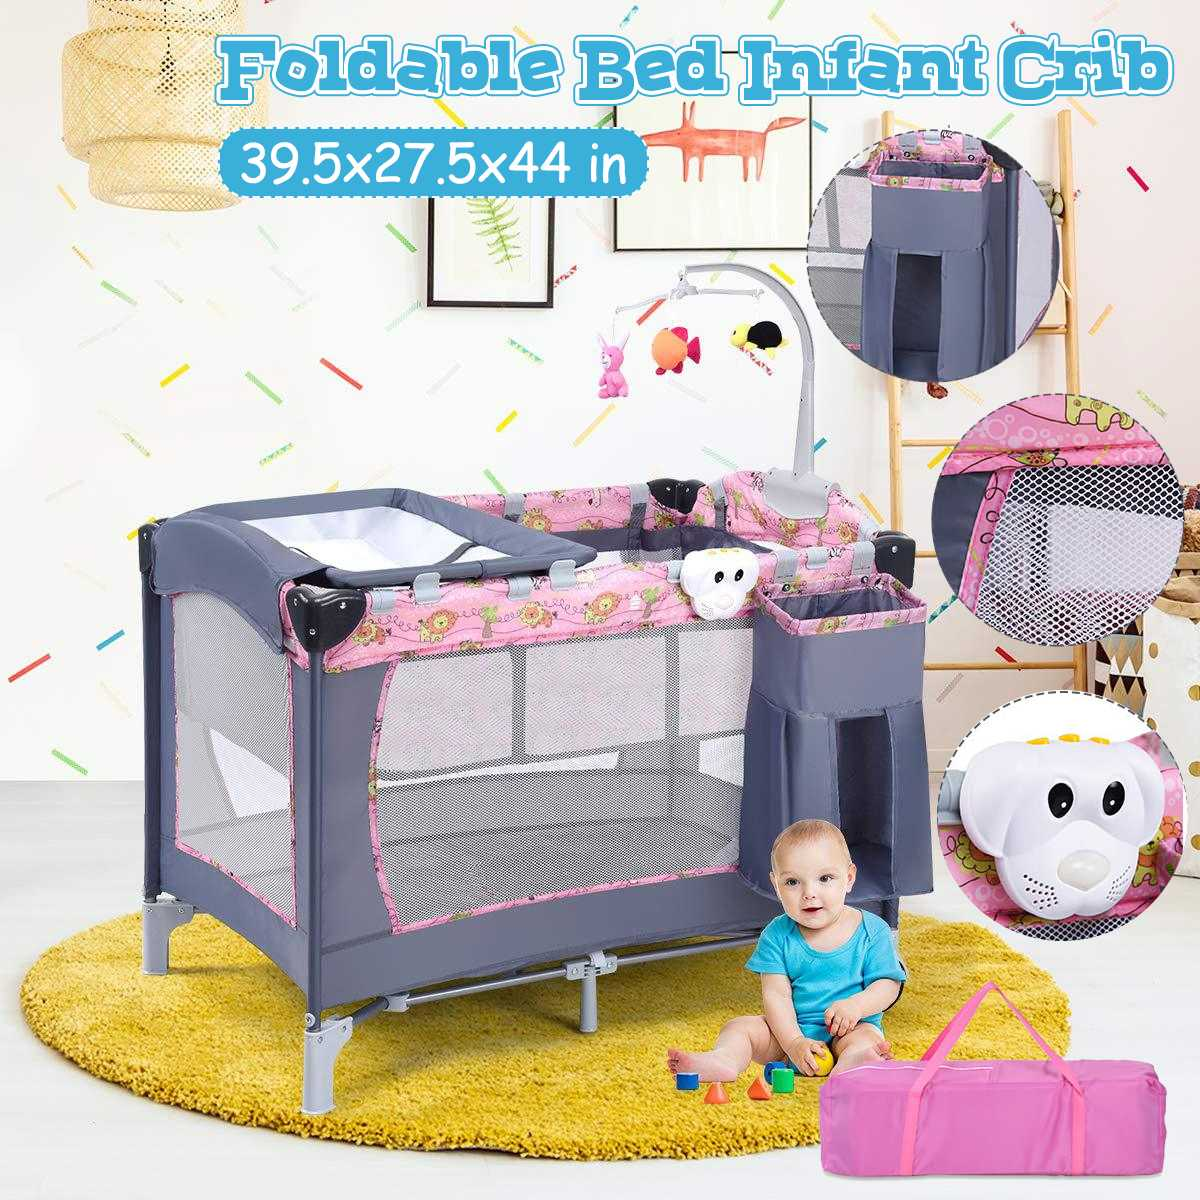 Multifunctional Children's Bed Baby Playpen Crib Toddler Foldable Travel Cradle Rocker Kid Game With Diaper Nursery Table